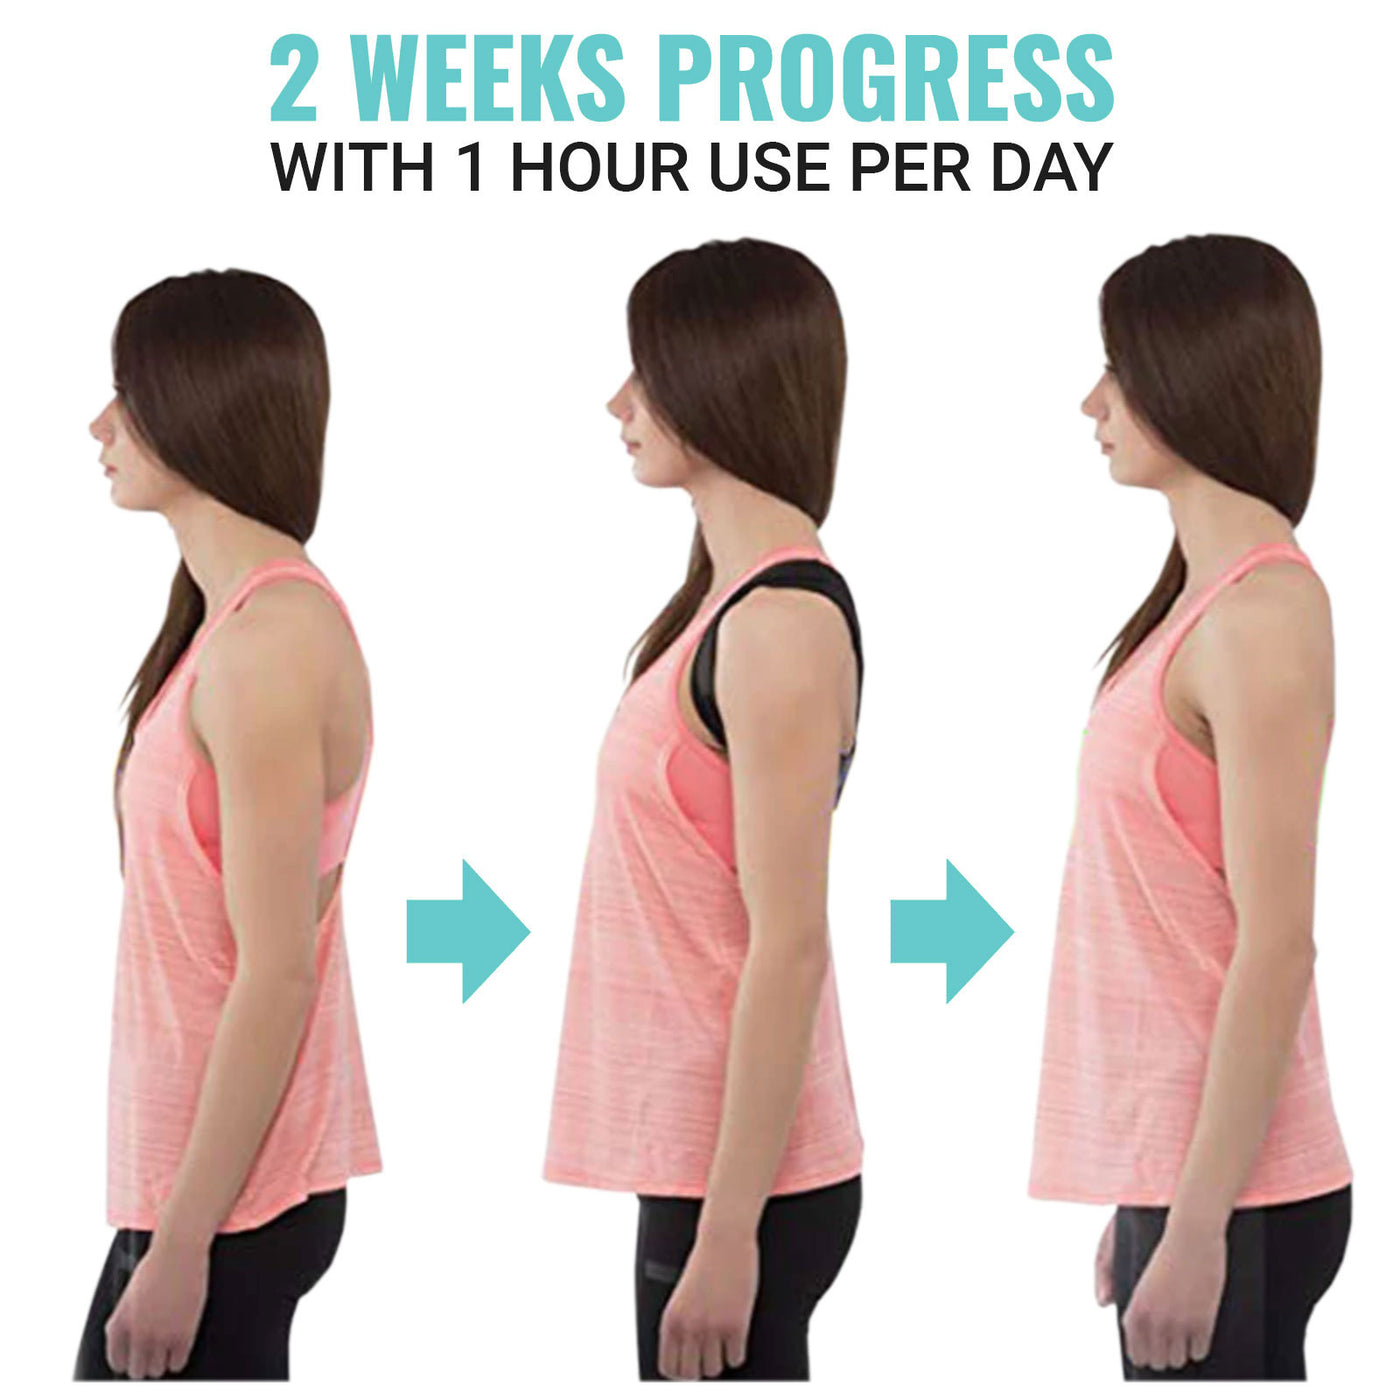 Good Posture In Just 2 Weeks